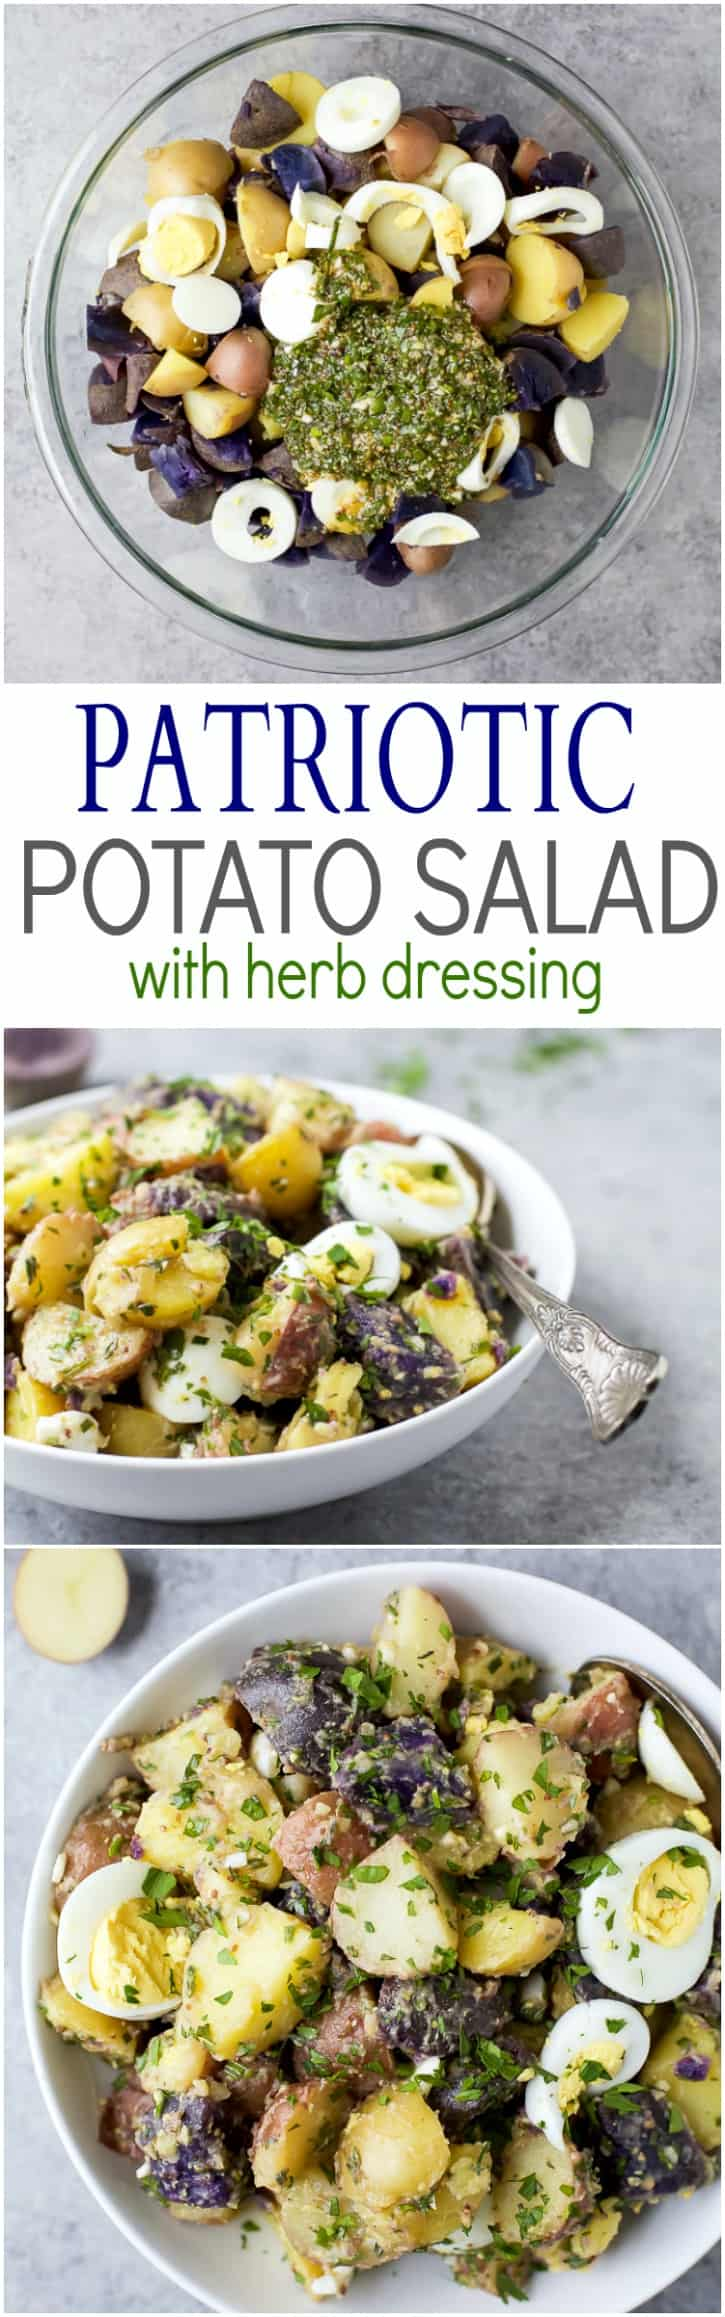 Patriotic Potato Salad made with red, white, and blue potatoes then ...